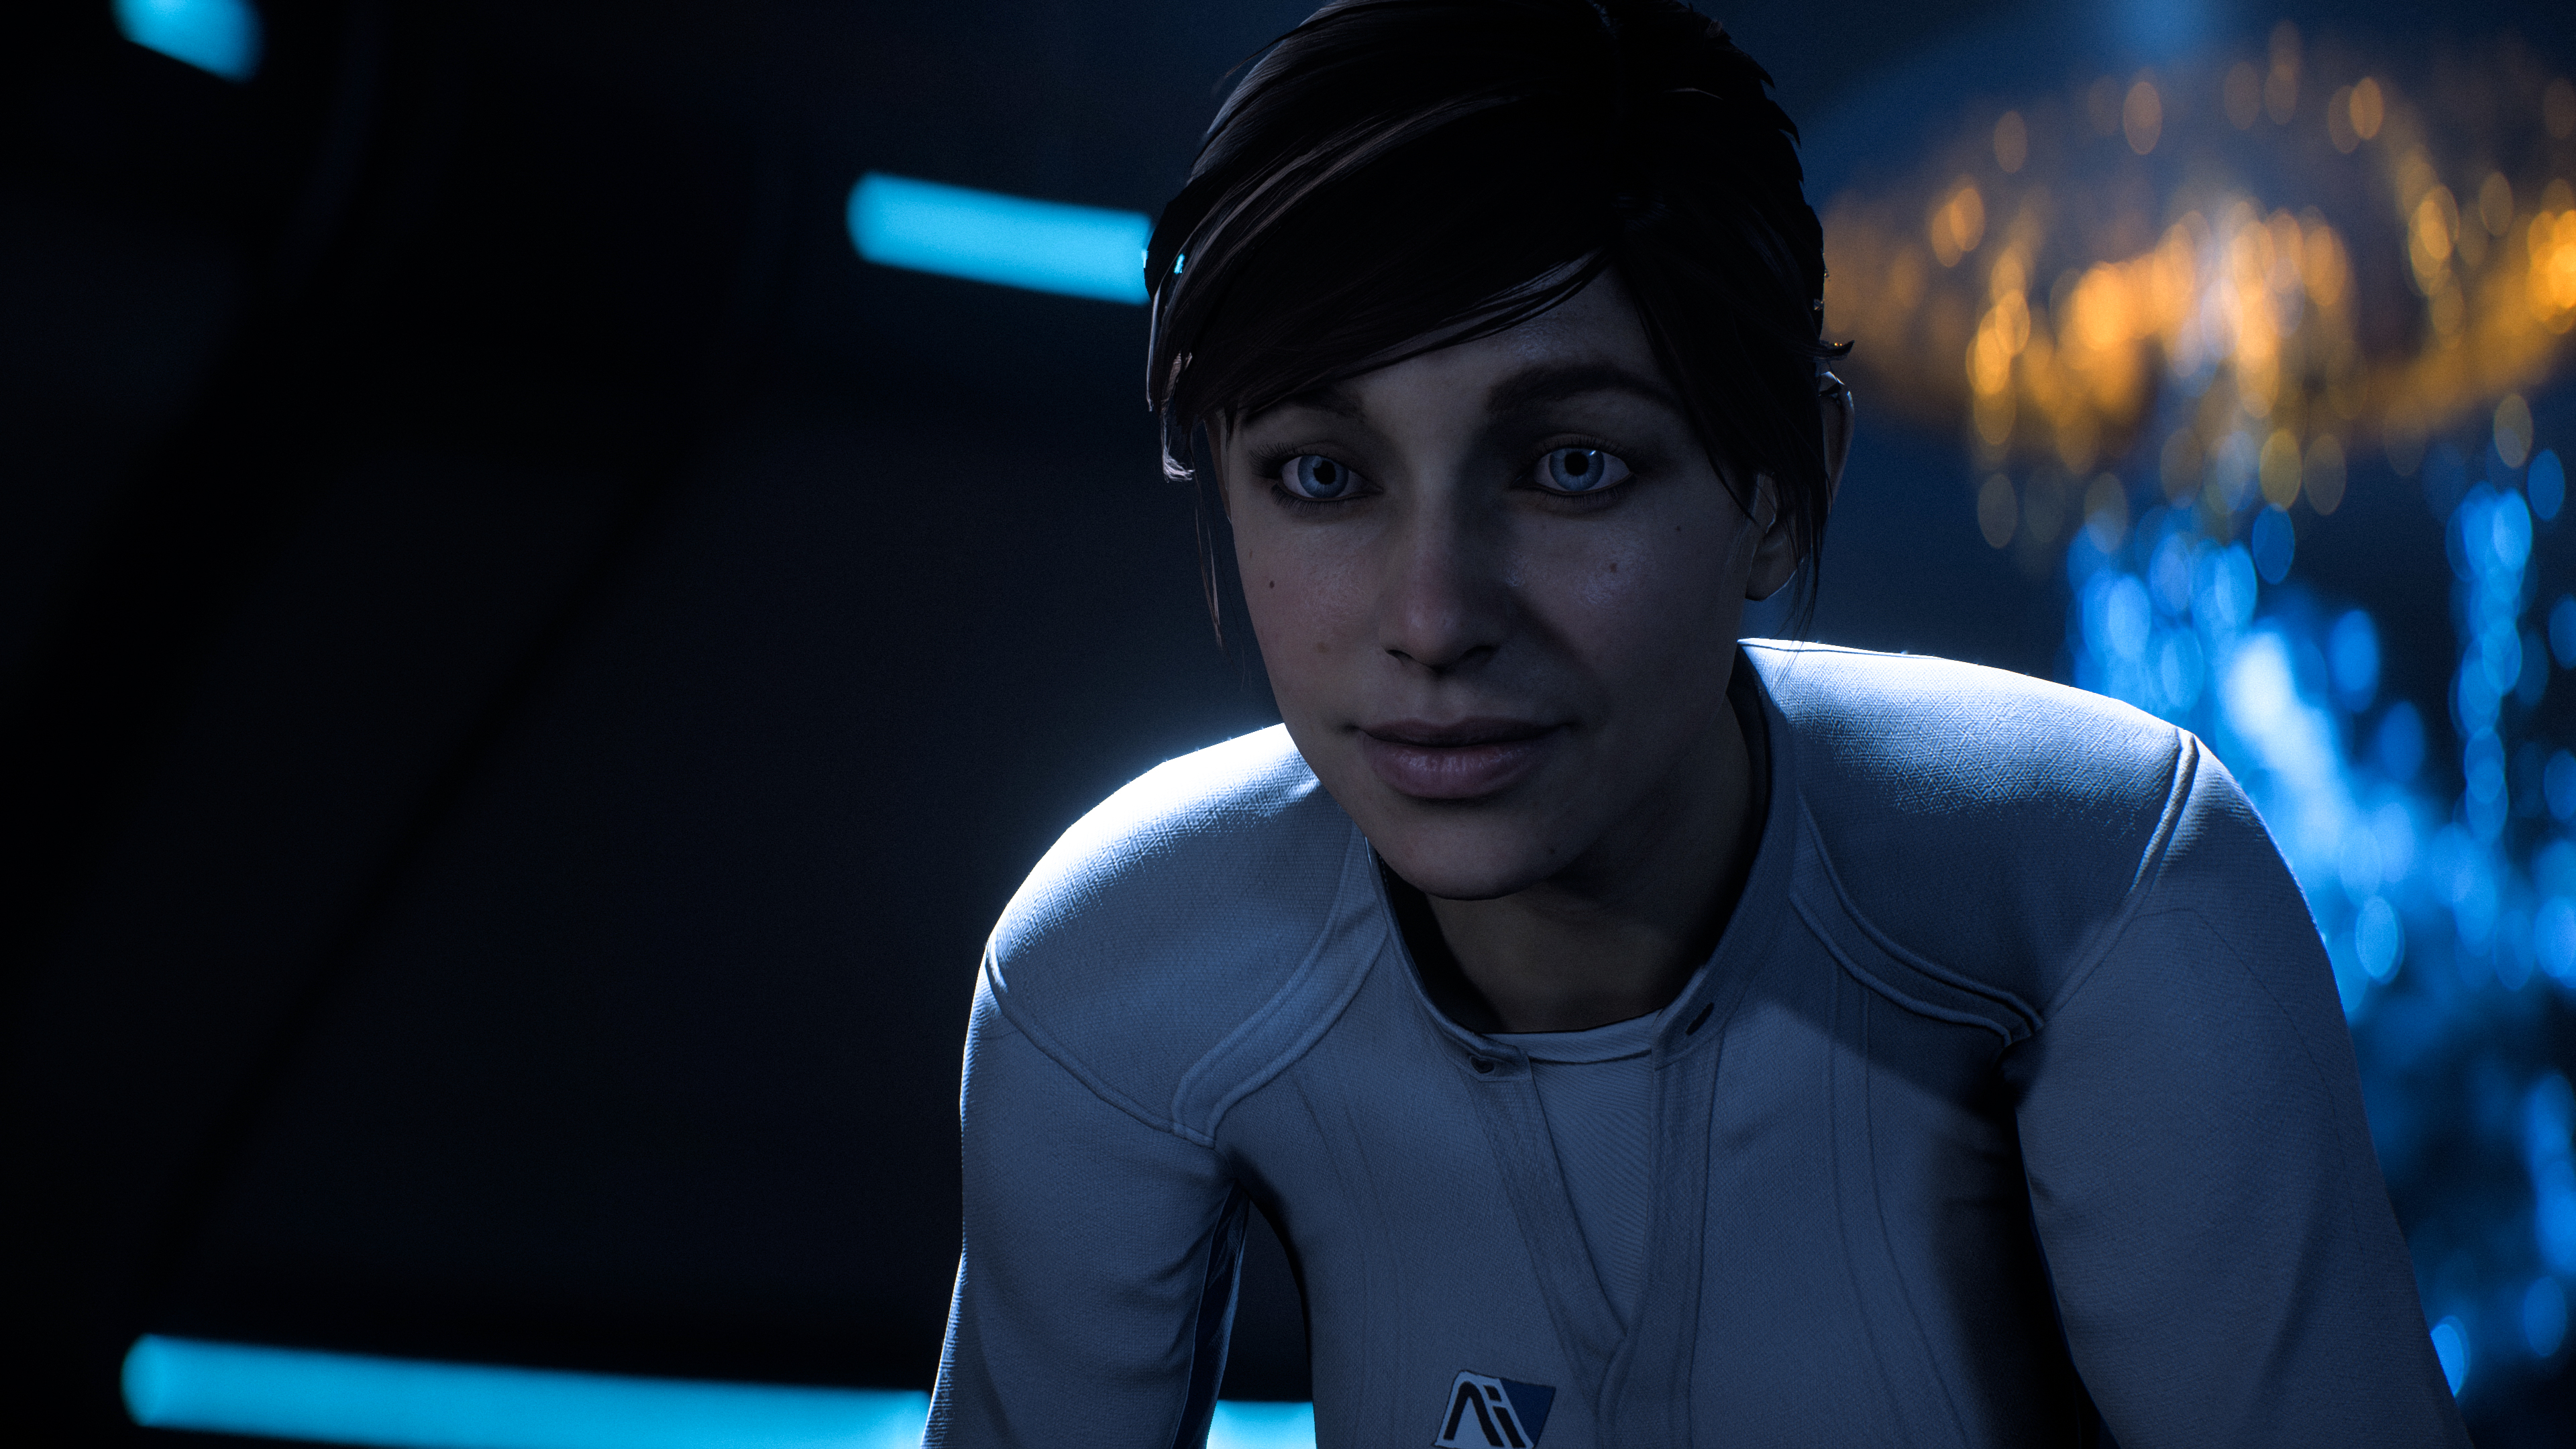 mass effect andromeda matchmaking problems